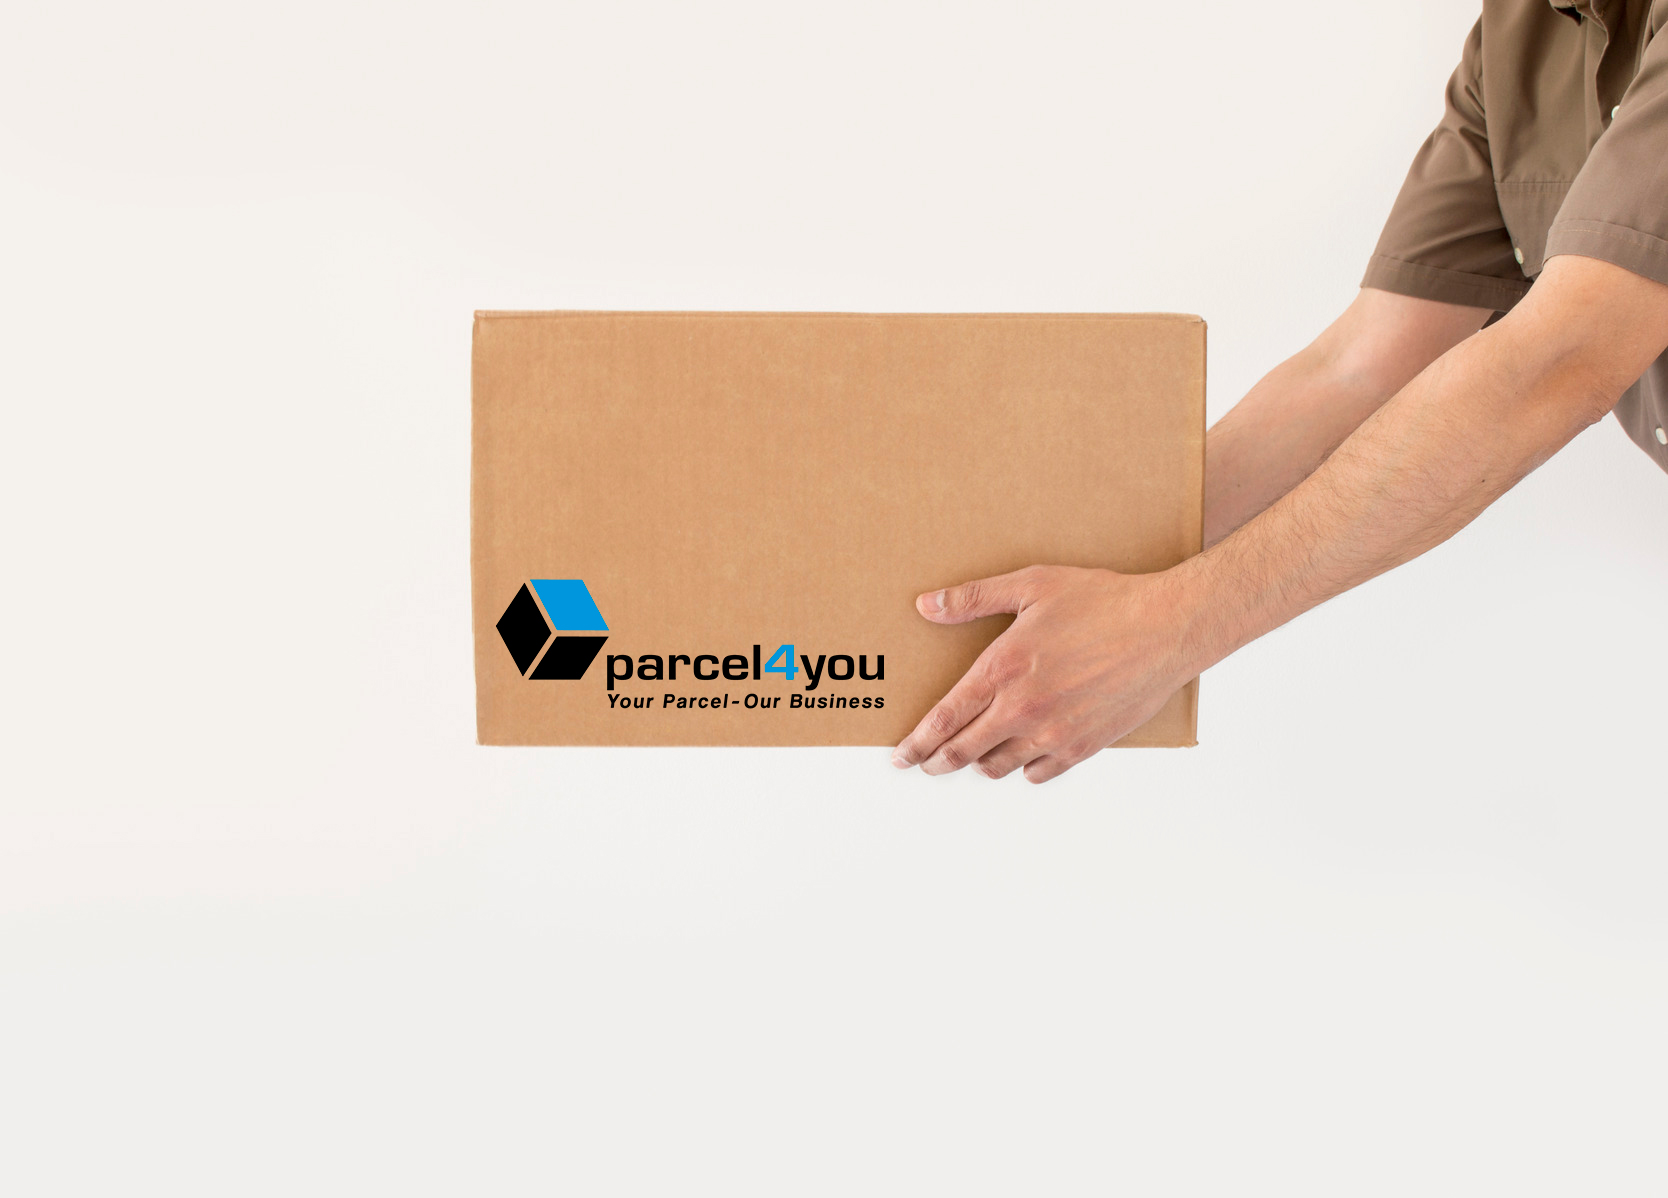 Parcel4you - Parcel Delivery Solutions